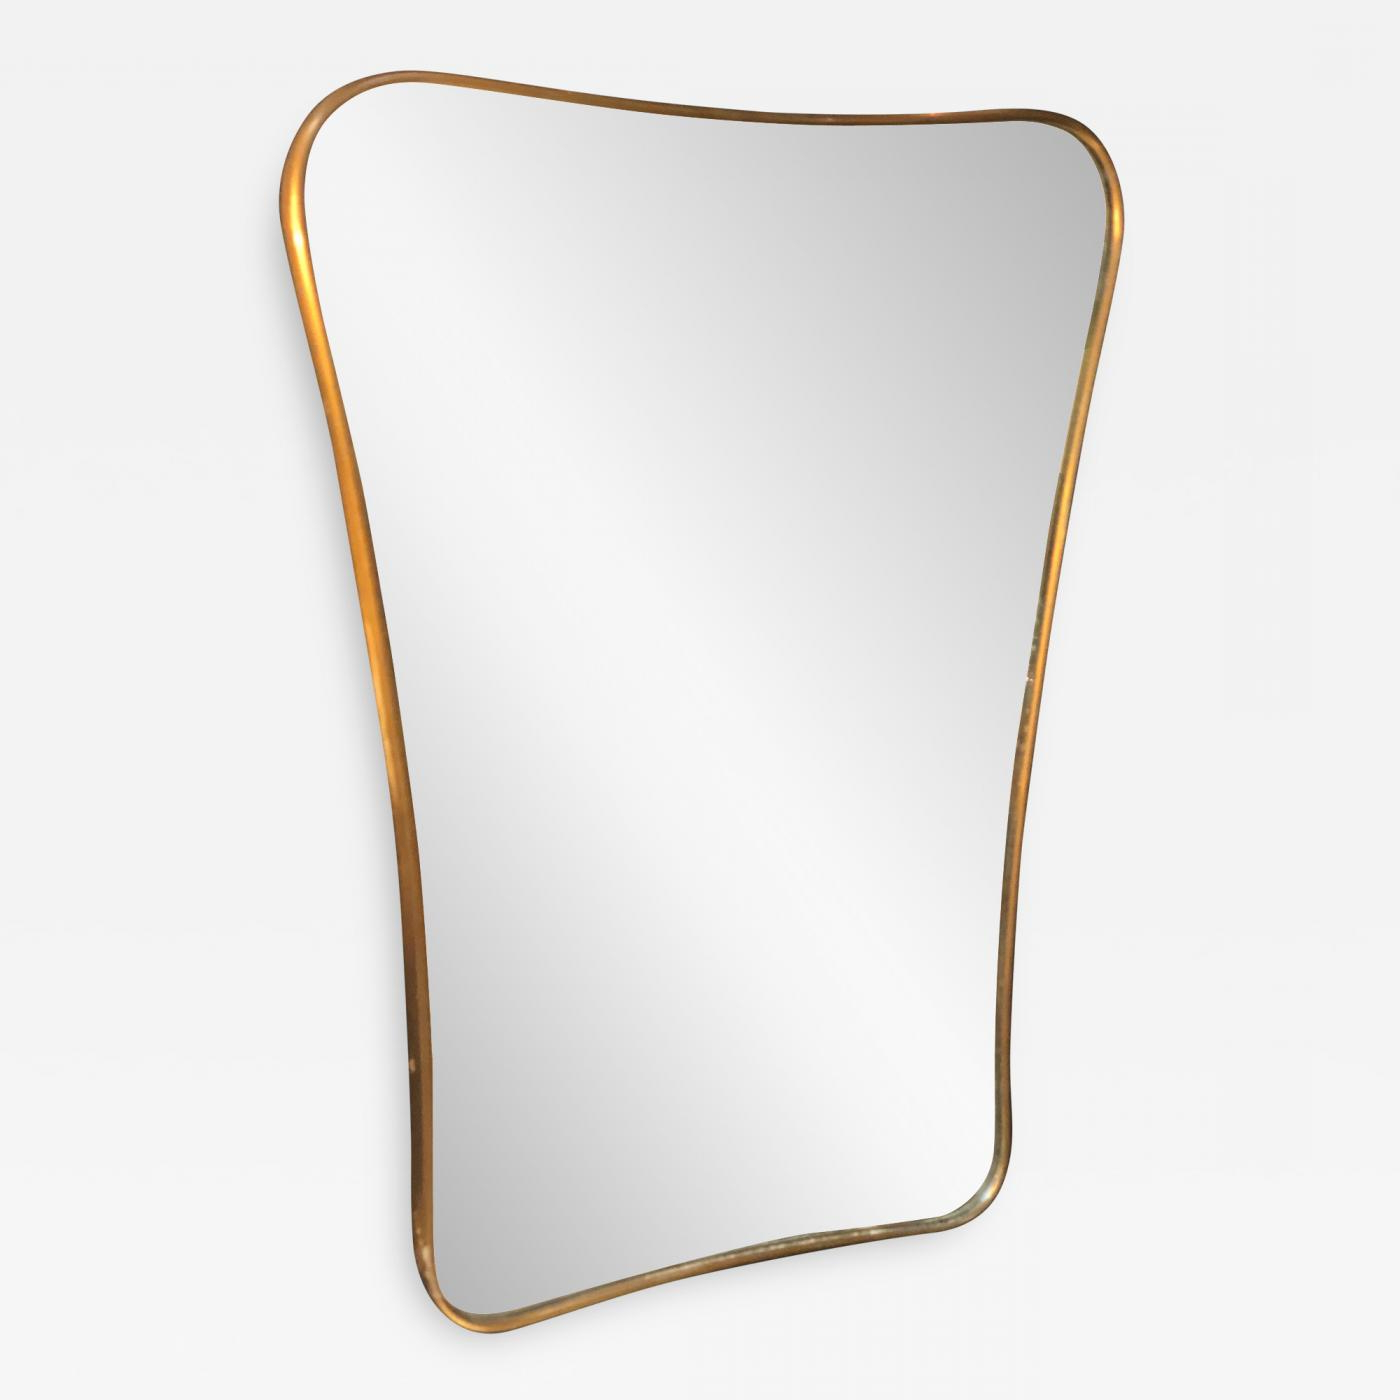 Midcentury Wall Mirror Brass Frame Minimal And Sculptural Design, 1950S With Most Current Mid Century Wall Mirrors (Gallery 3 of 20)